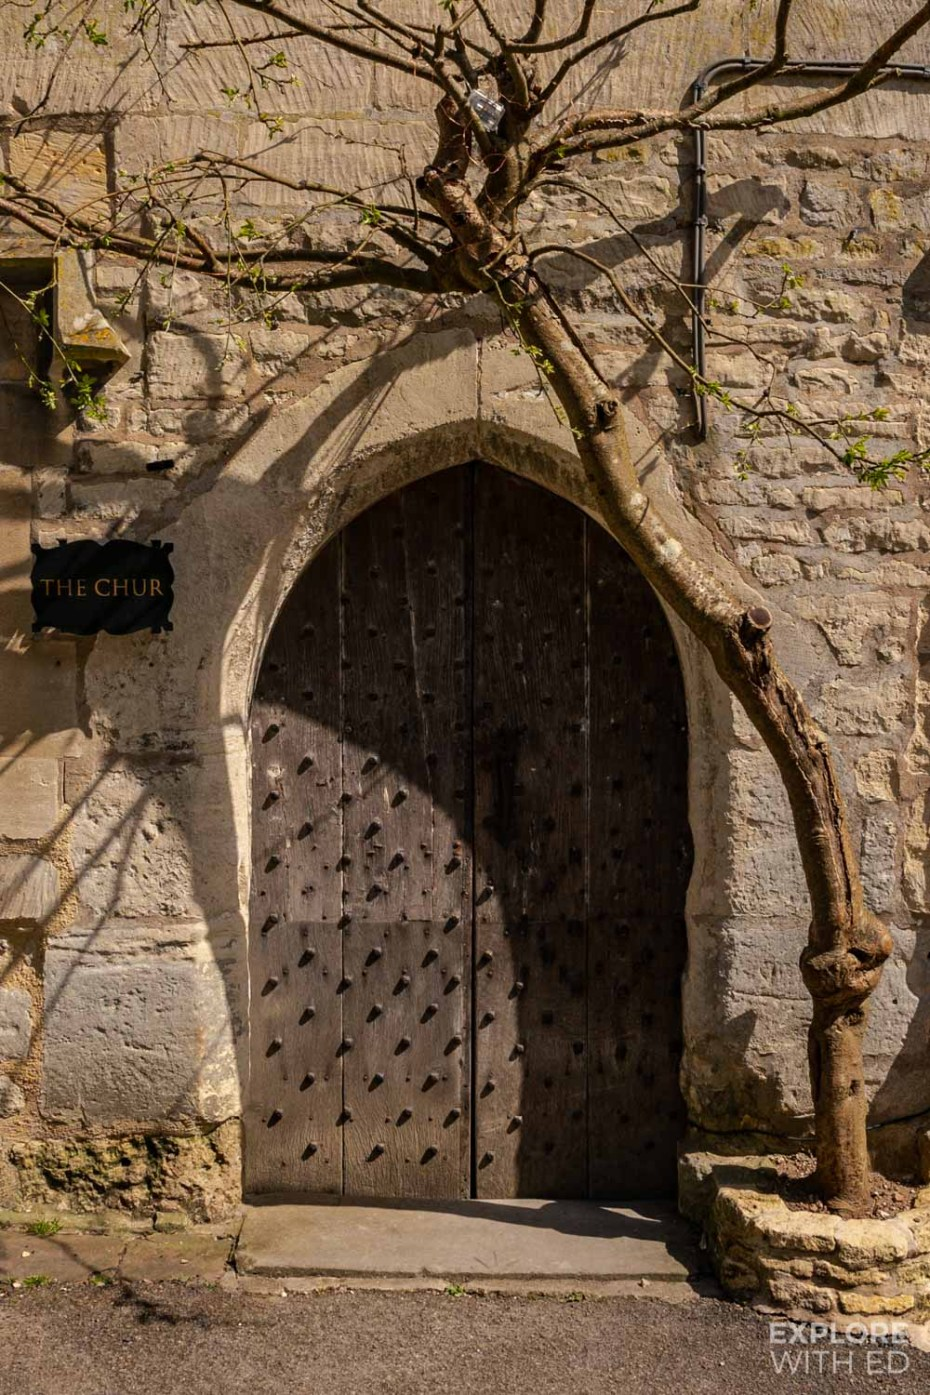 The Chur, Old door in Painswick